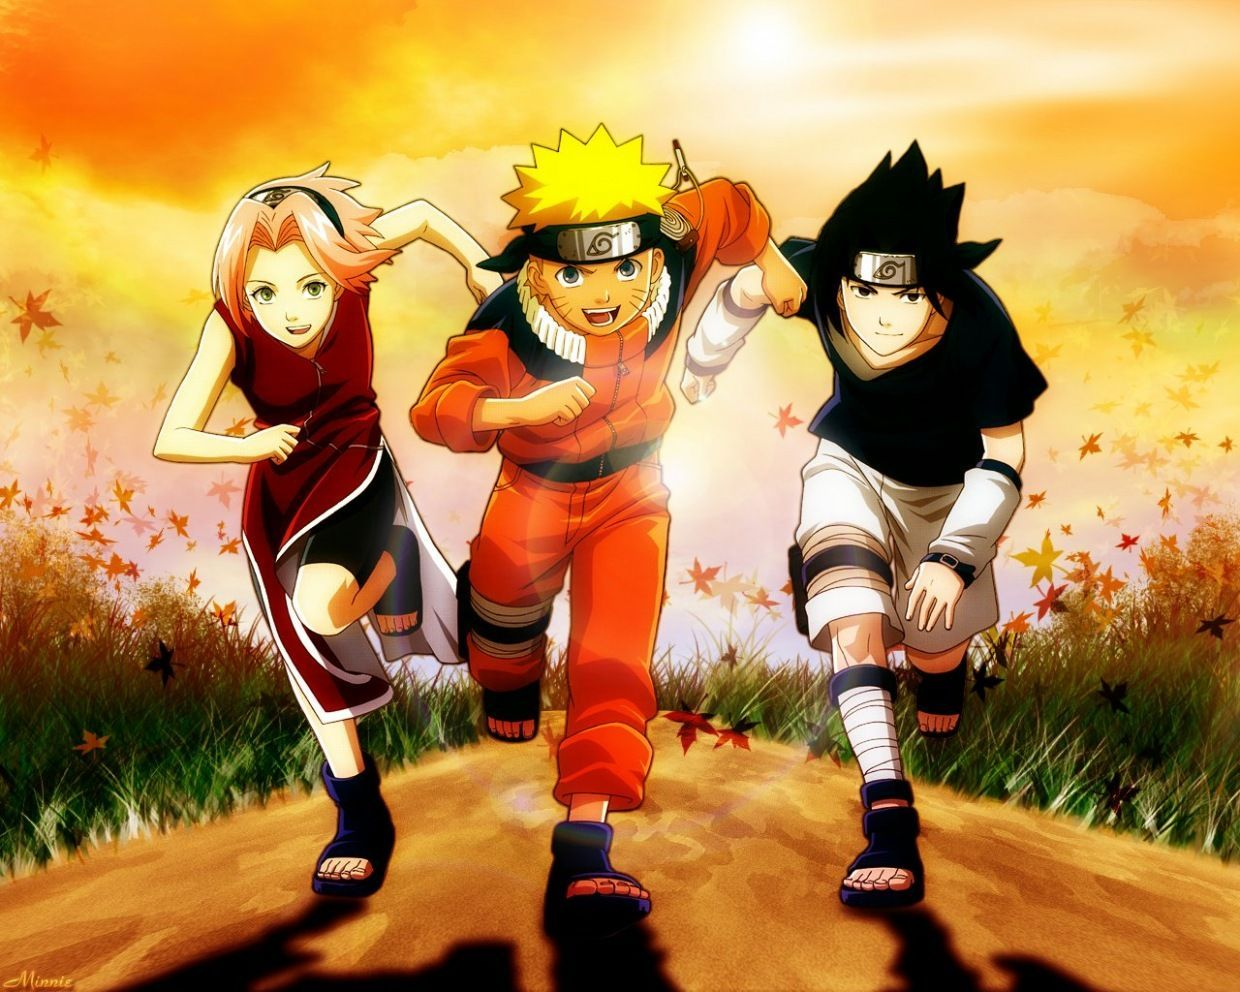 Naruto Sasuke Sakura Wallpapers Top Free Naruto Sasuke Sakura Backgrounds Wallpaperaccess